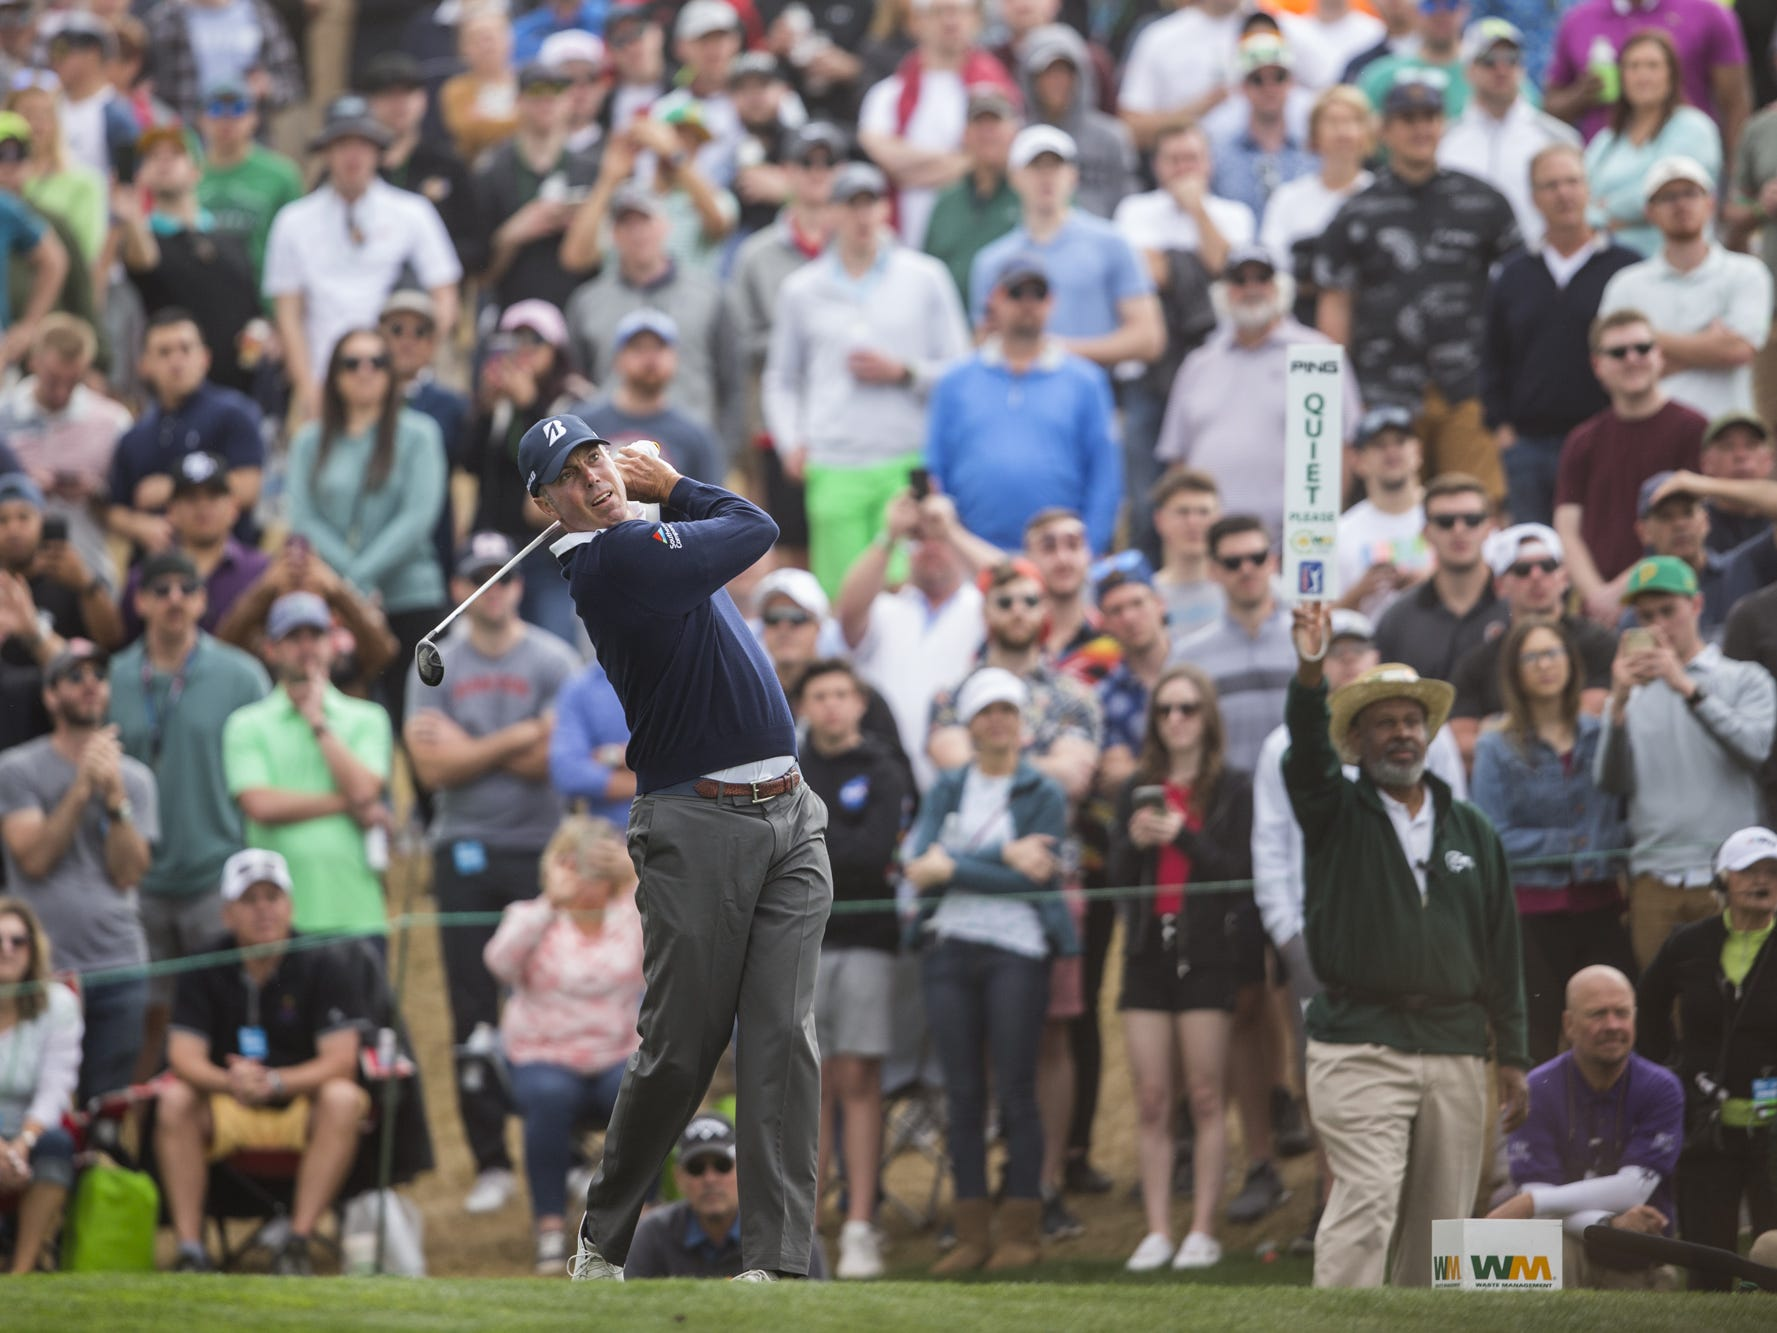 Matt Kuchar tees off on the 7th hole during Round 3 of the Waste Management Phoenix Open on Saturday, Feb. 2, 2019, at TPC Scottsdale in Scottsdale, Ariz.